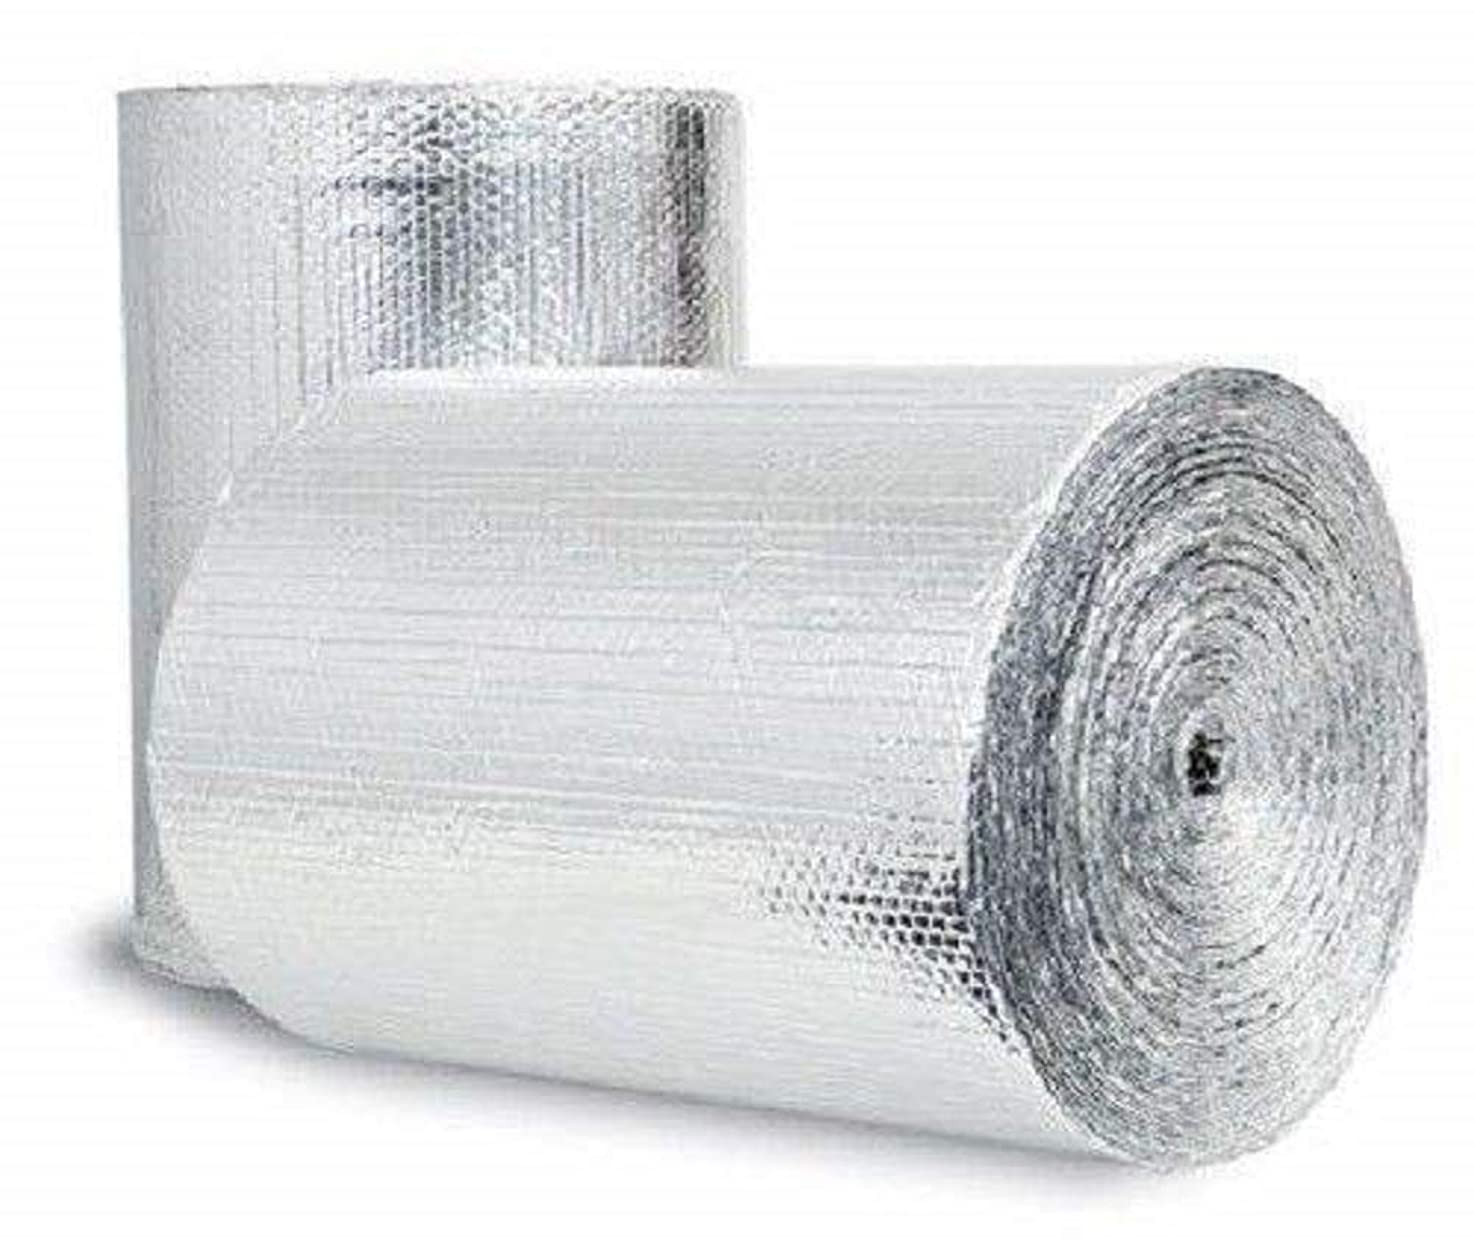 US Energy Products Double Sided Reflective Heat Radiant Barrier Aluminum Foil Insulation (1/4 Thick R8 Double Poly-Air) Roll: Walls Attics Air Ducts Windows Radiators HVAC Garages + More (24